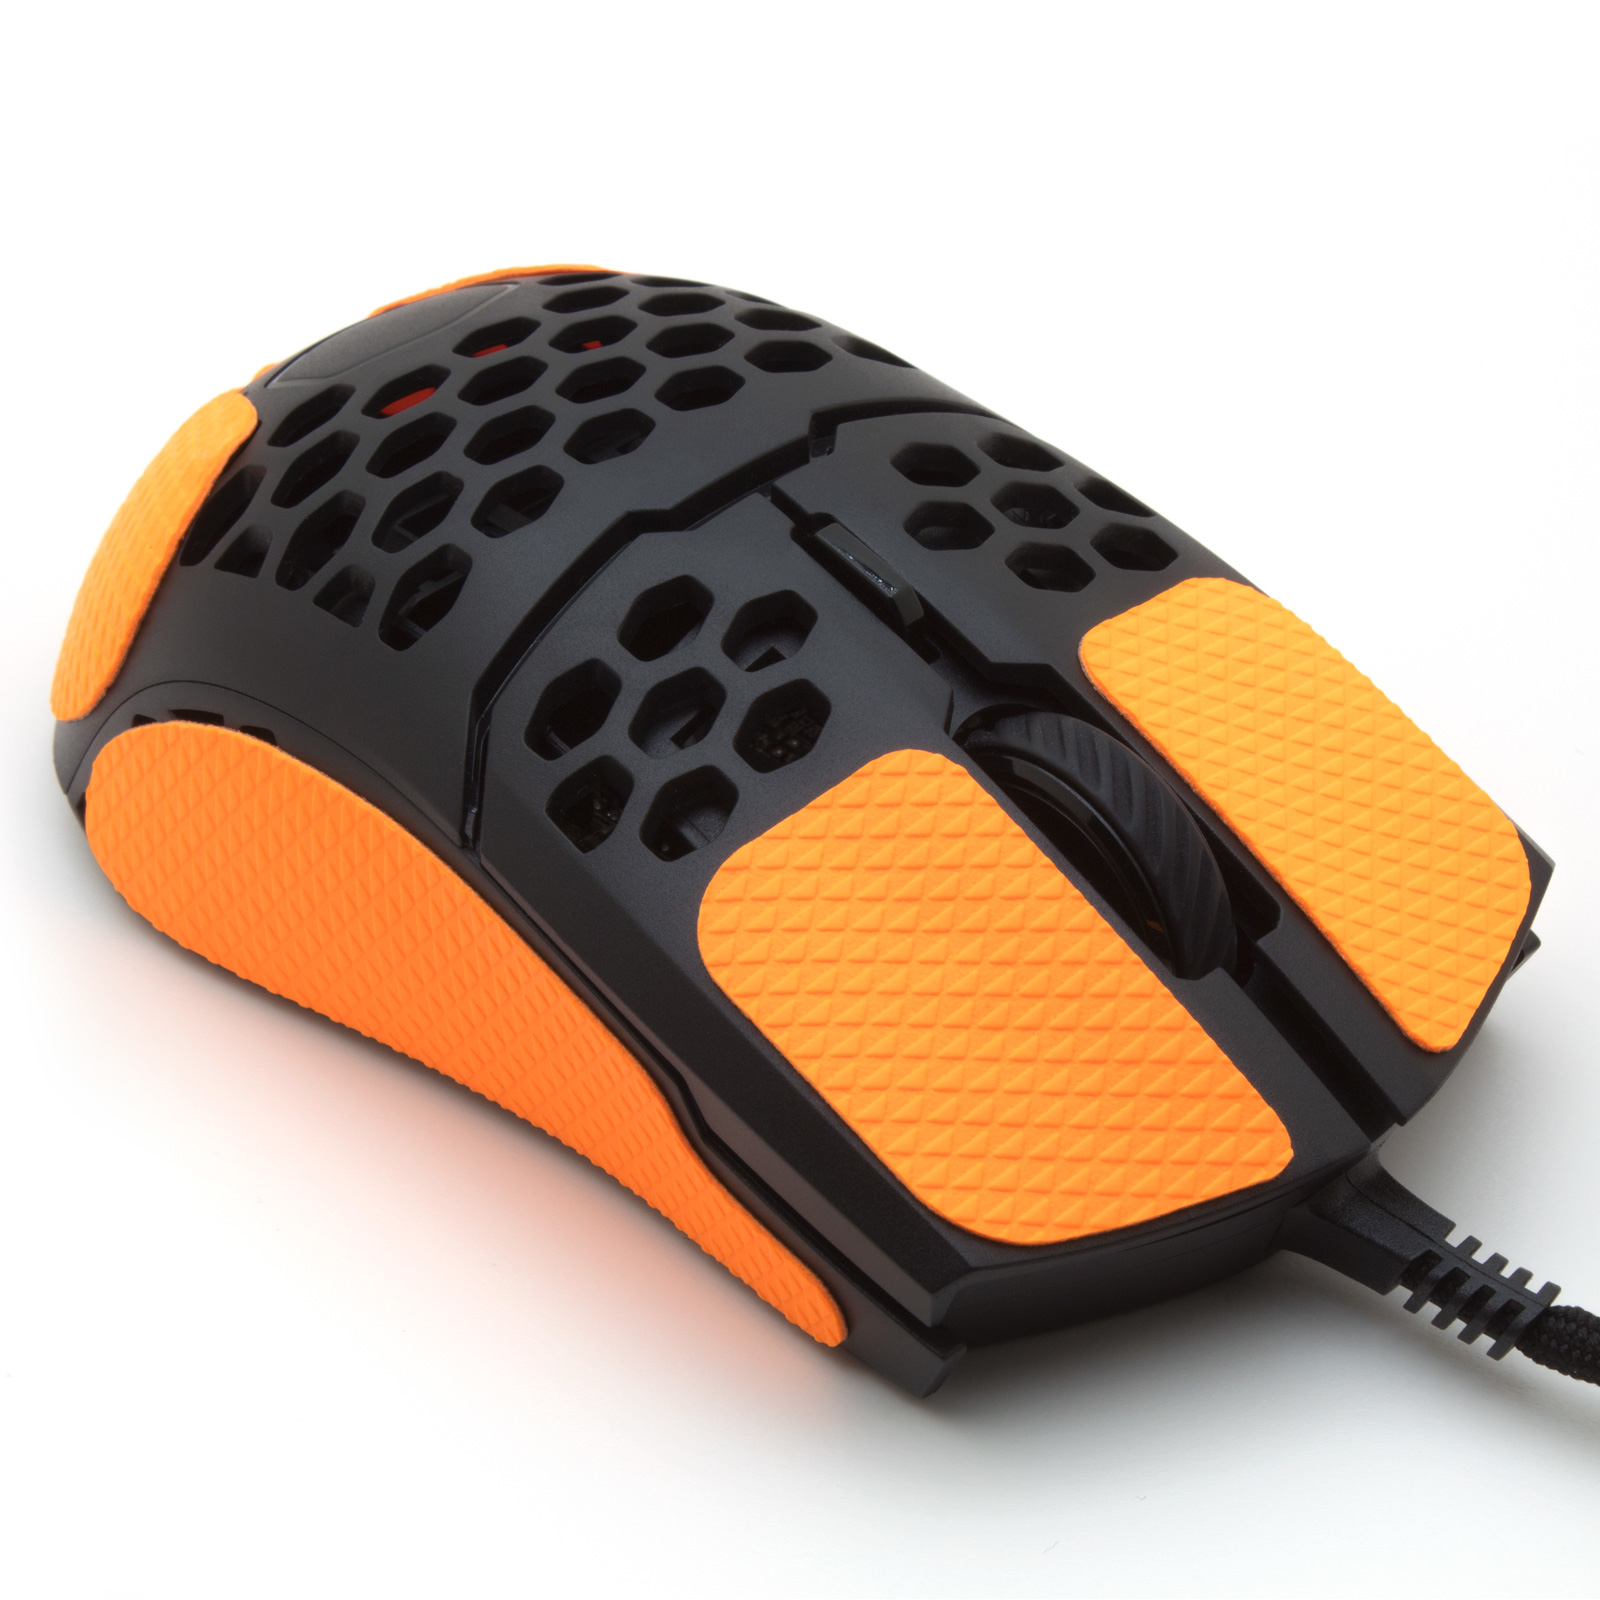 Mouse grip tape for Coolermaster MM711 from the brand TrueGrip - front right view